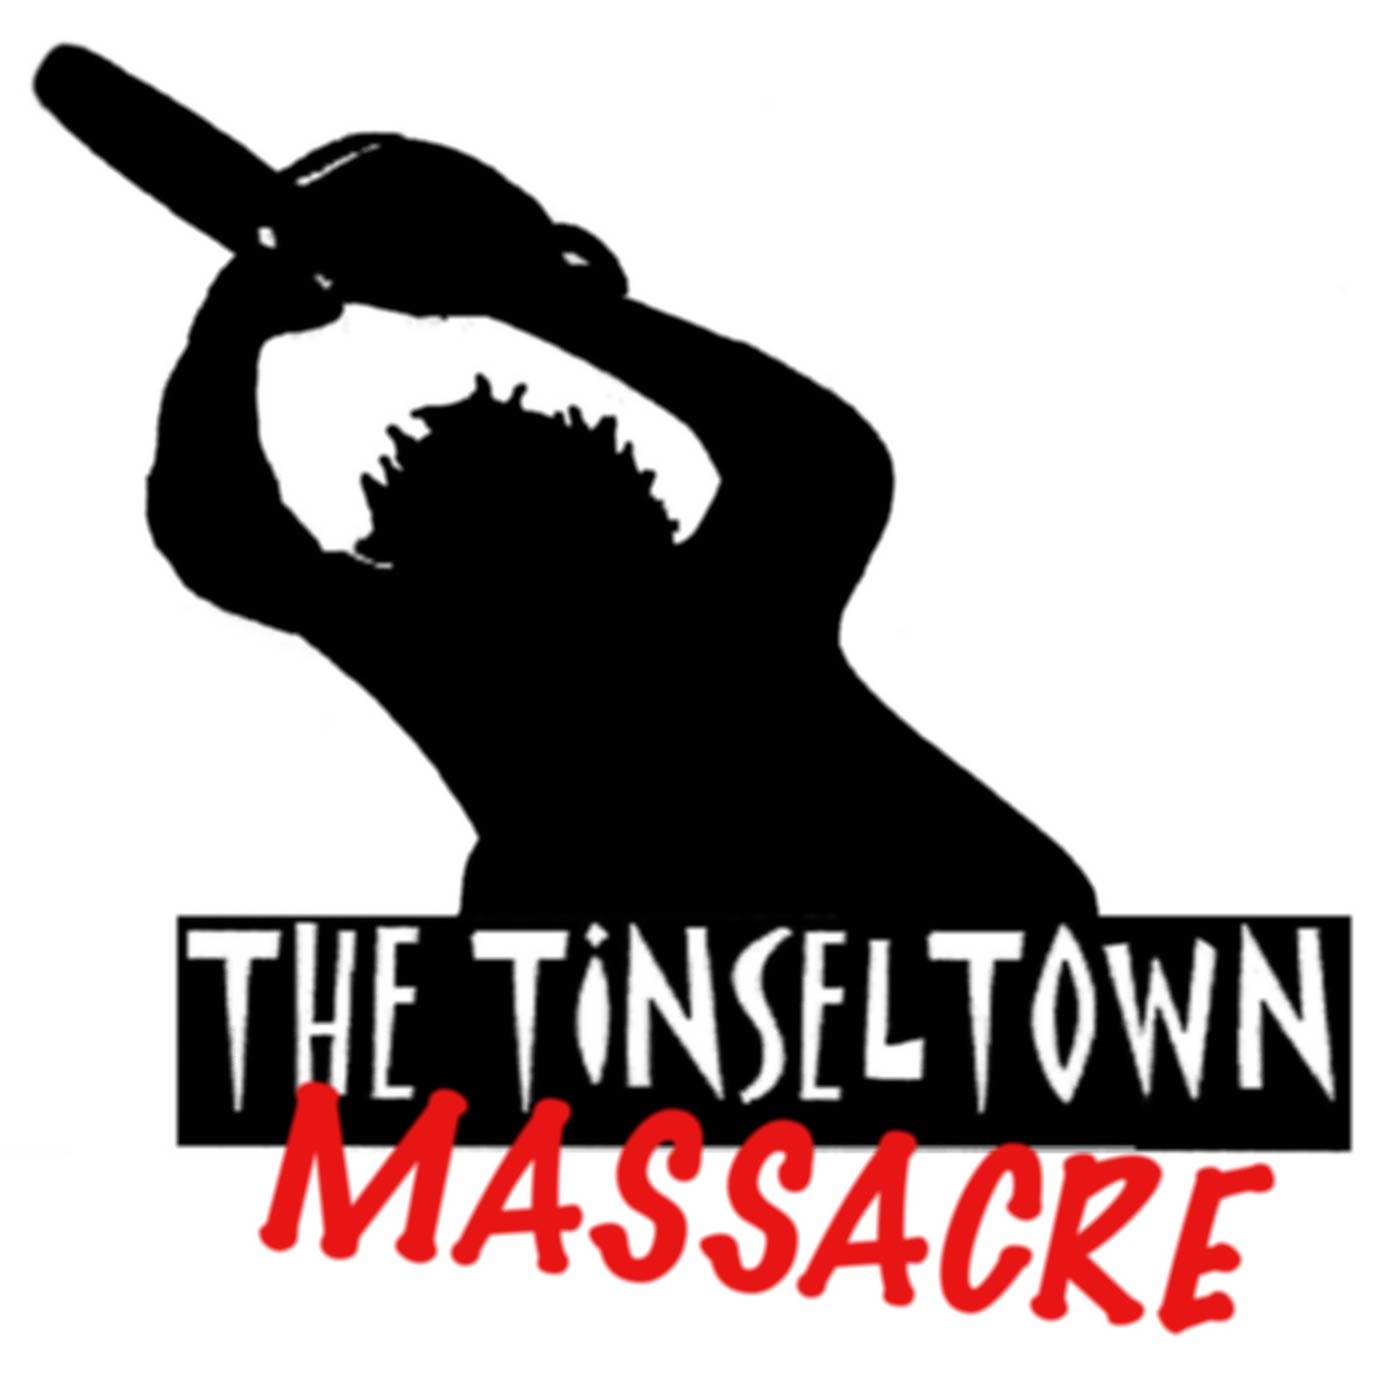 The Tinseltown Massacre logo